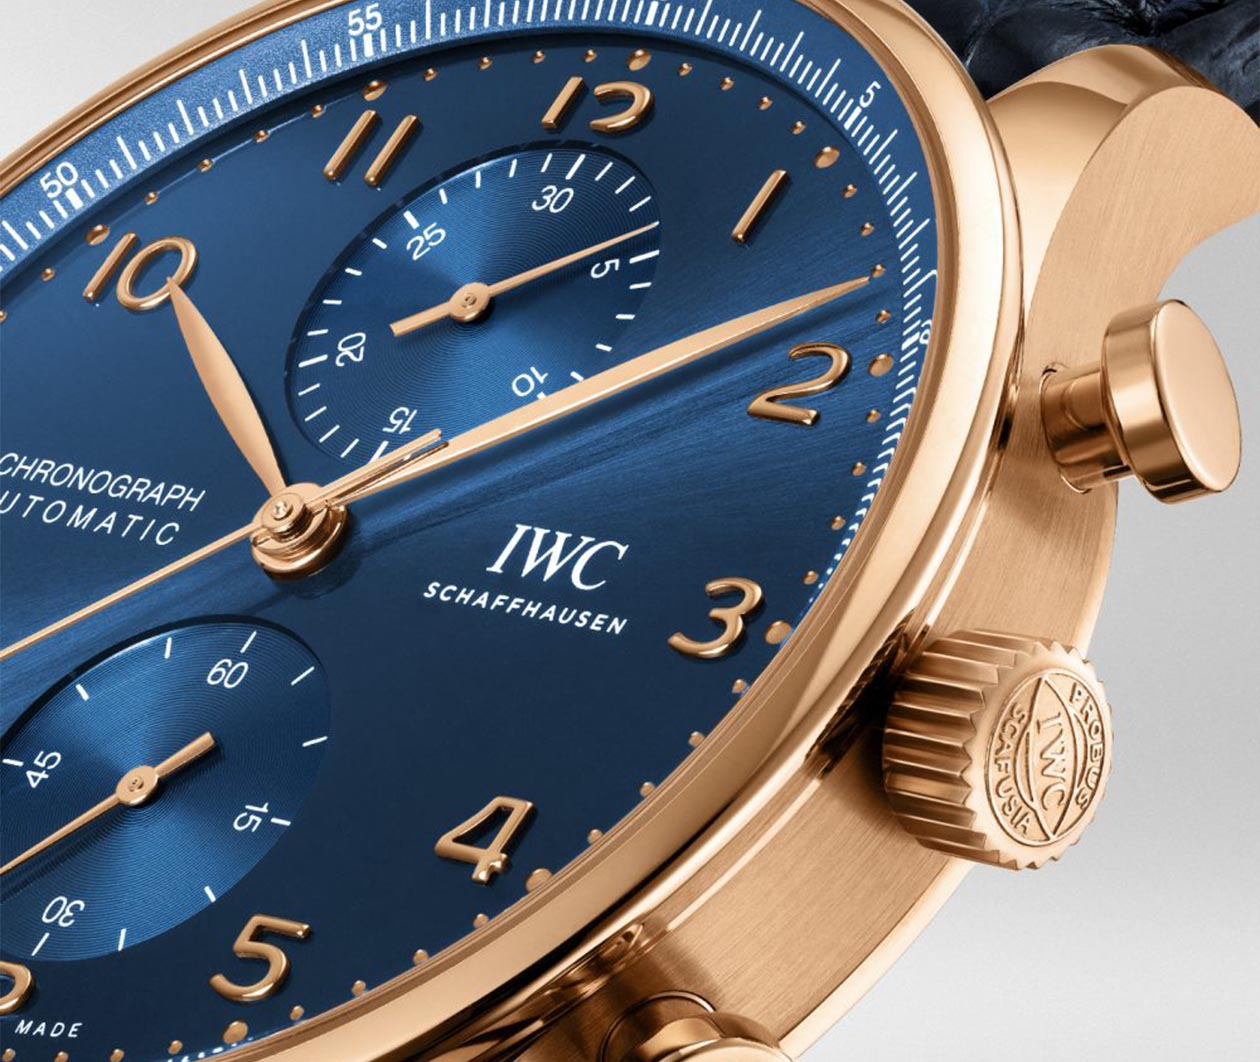 IWC Portugieser ChronographBoutiqueEdition IW371614 Carousel 3 FINAL